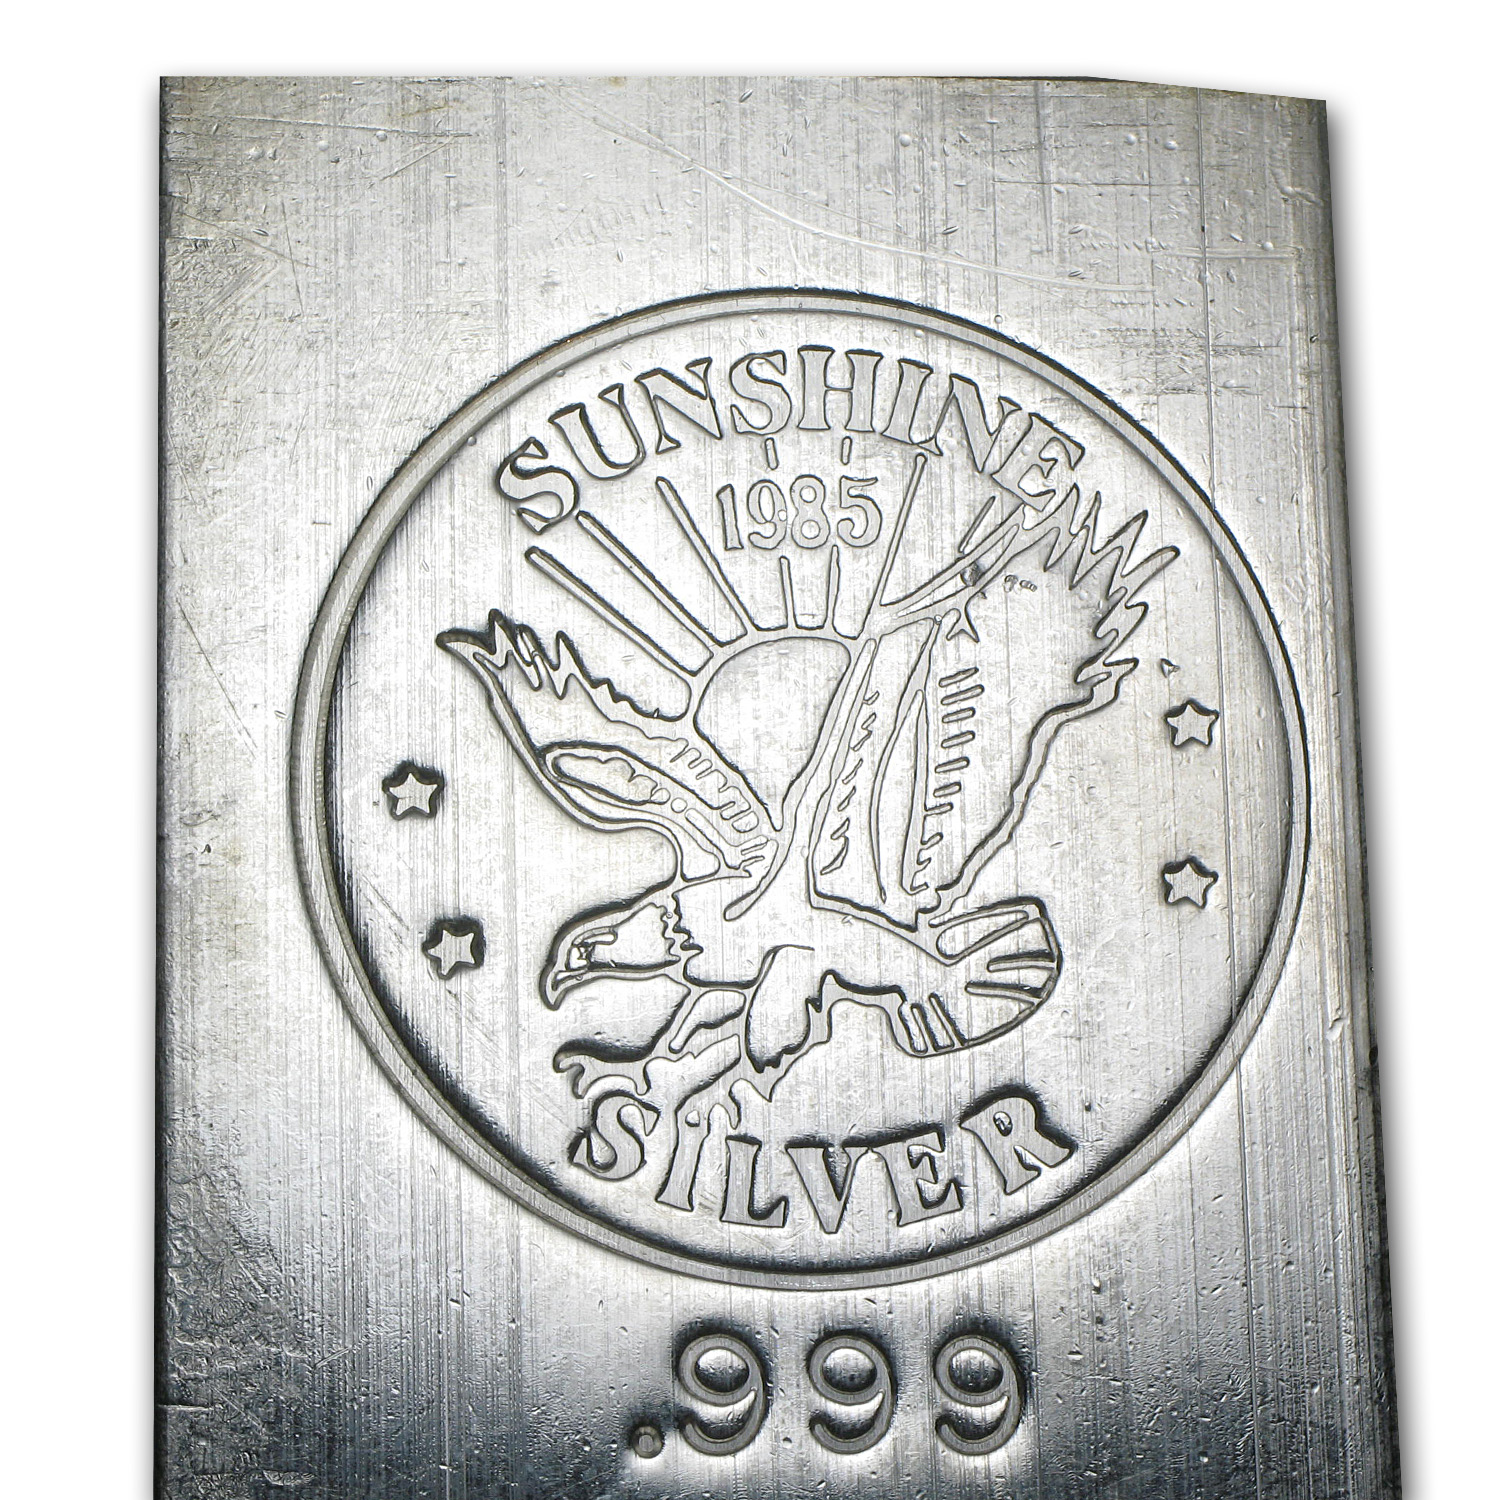 100 oz Silver Bars - Sunshine (1985/Vintage/Struck)